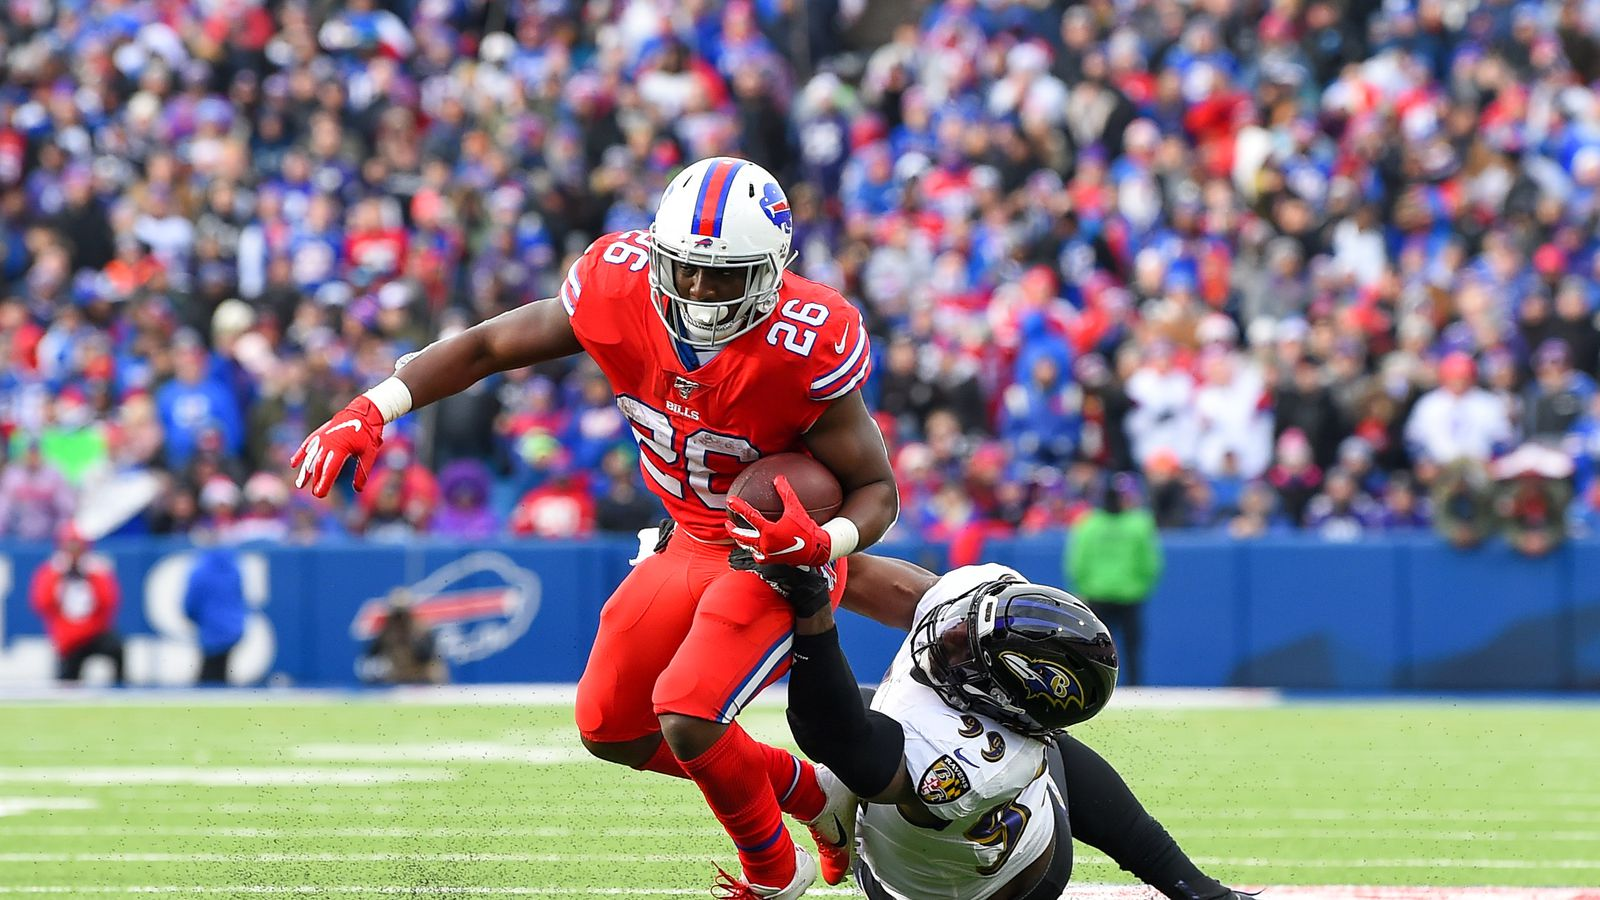 Bills 17, Ravens 24: Rapid recap and notes